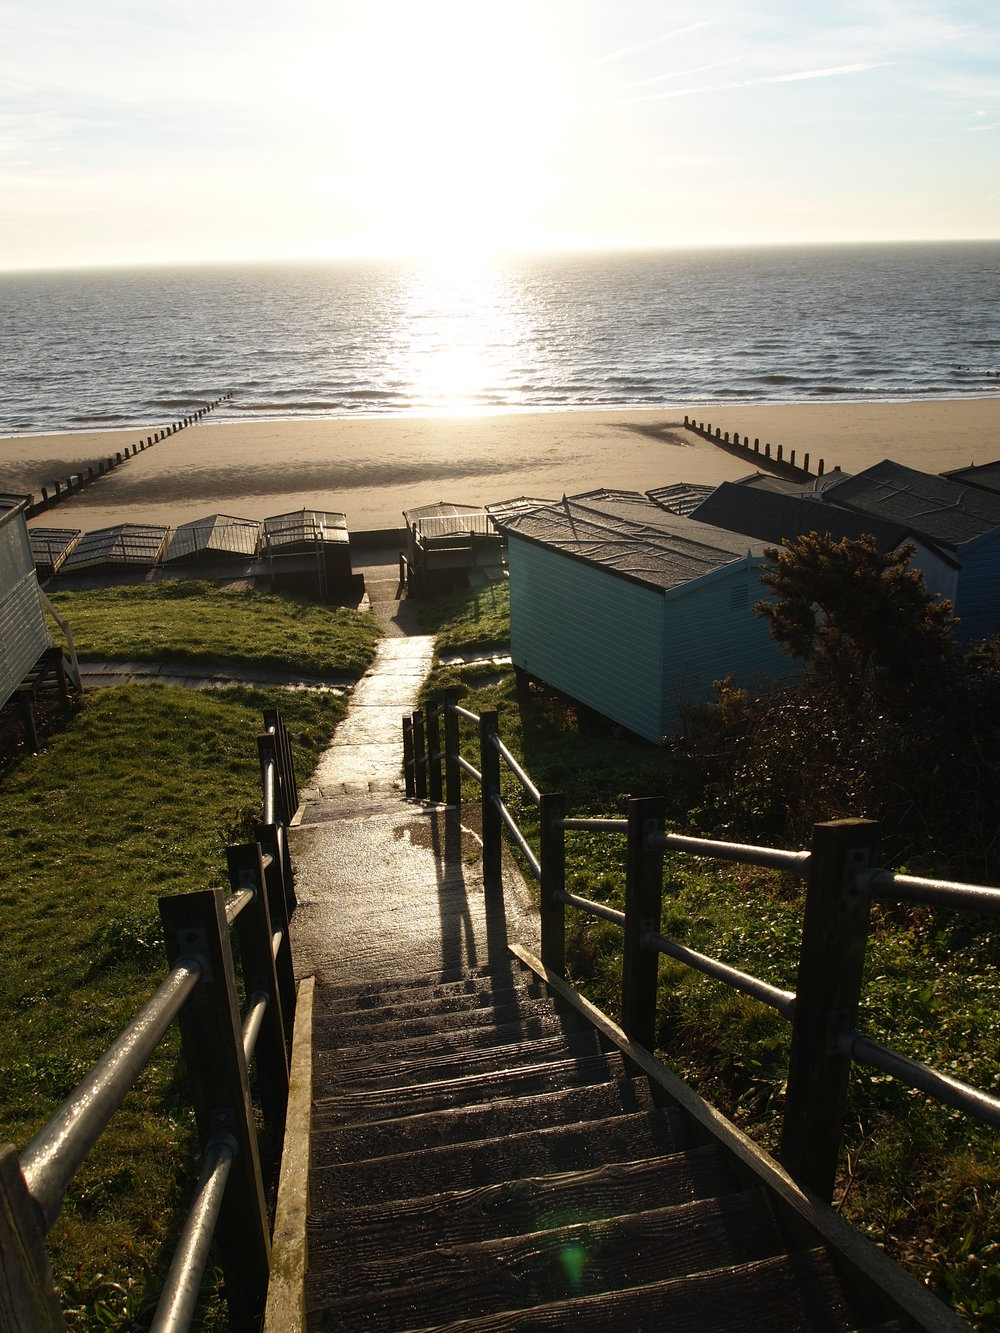 Frinton beach early in the morning